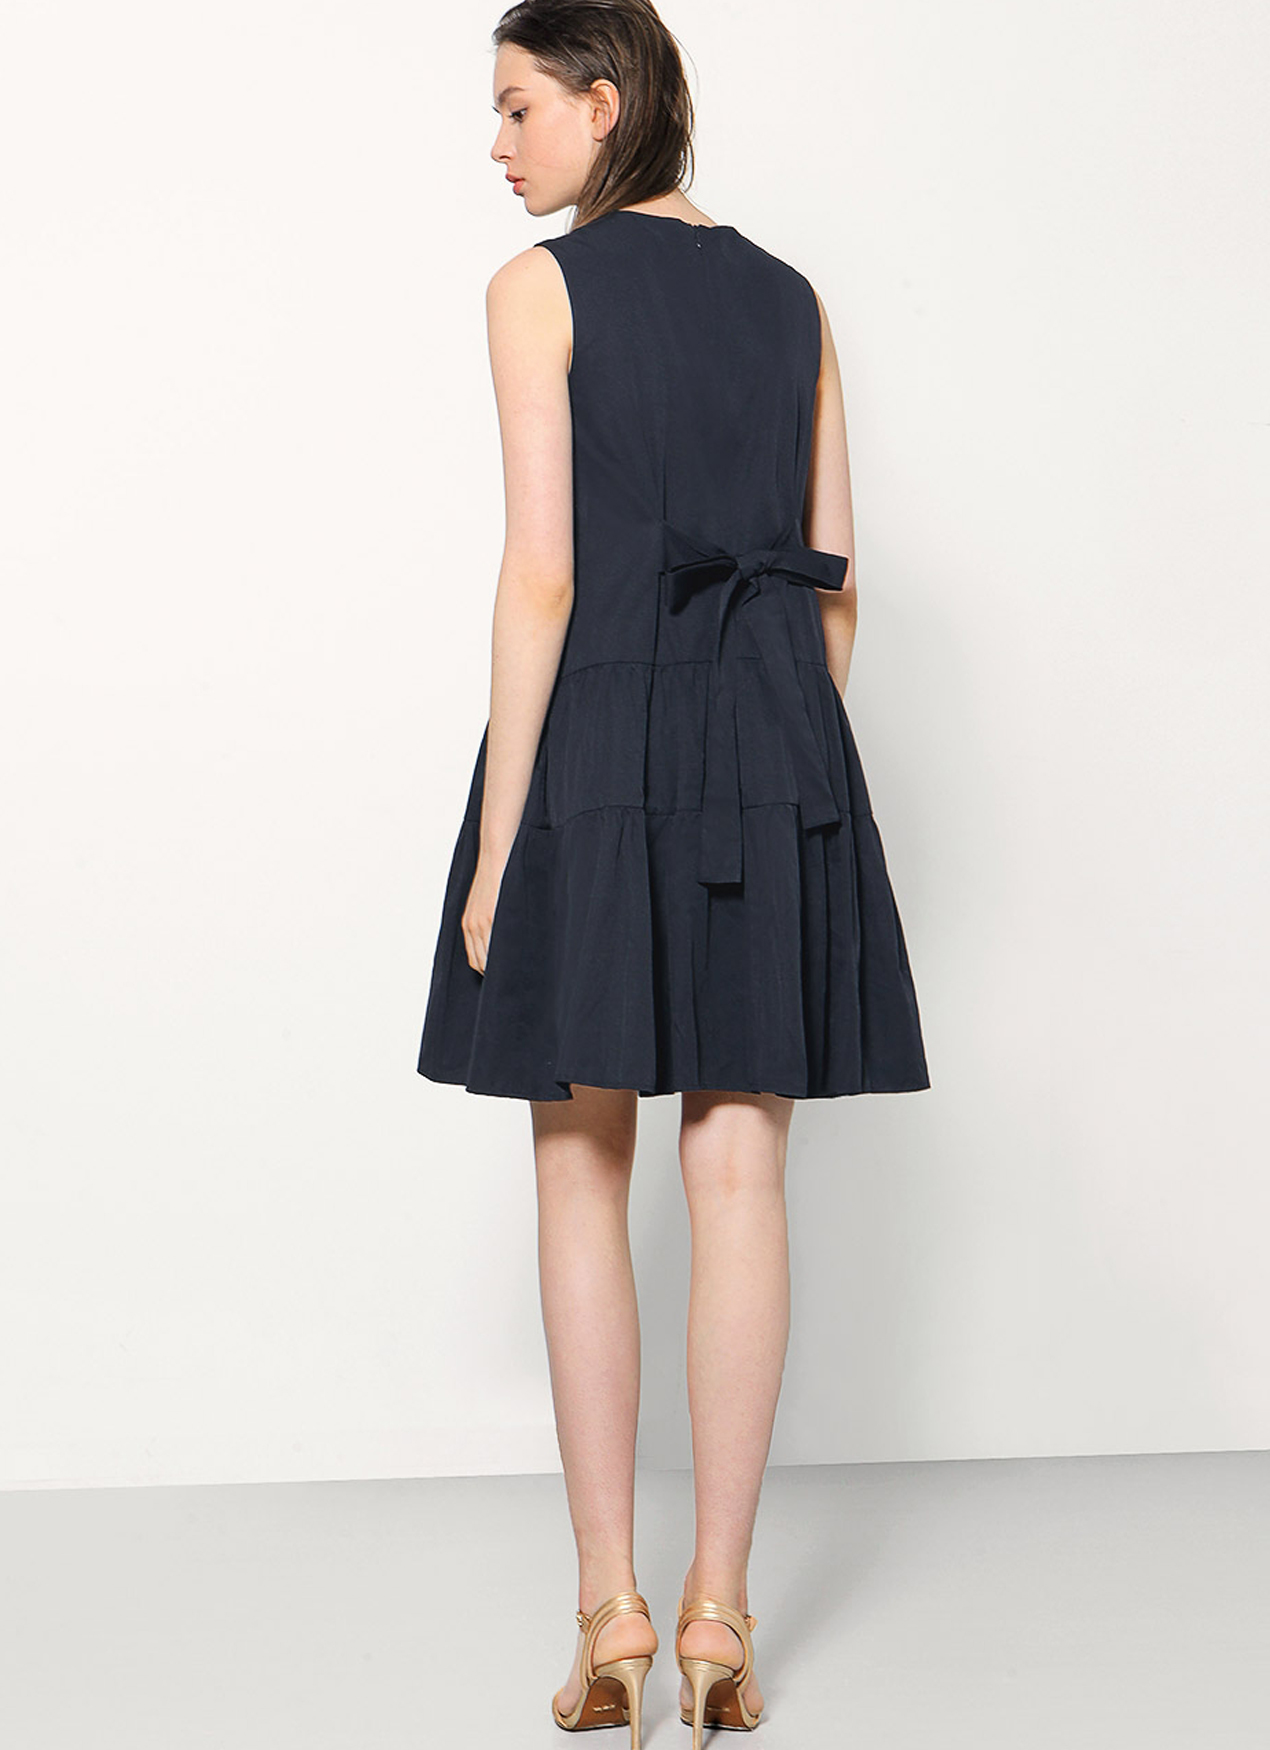 Saturday Club Navy Flare Dress With Gathered Skirt